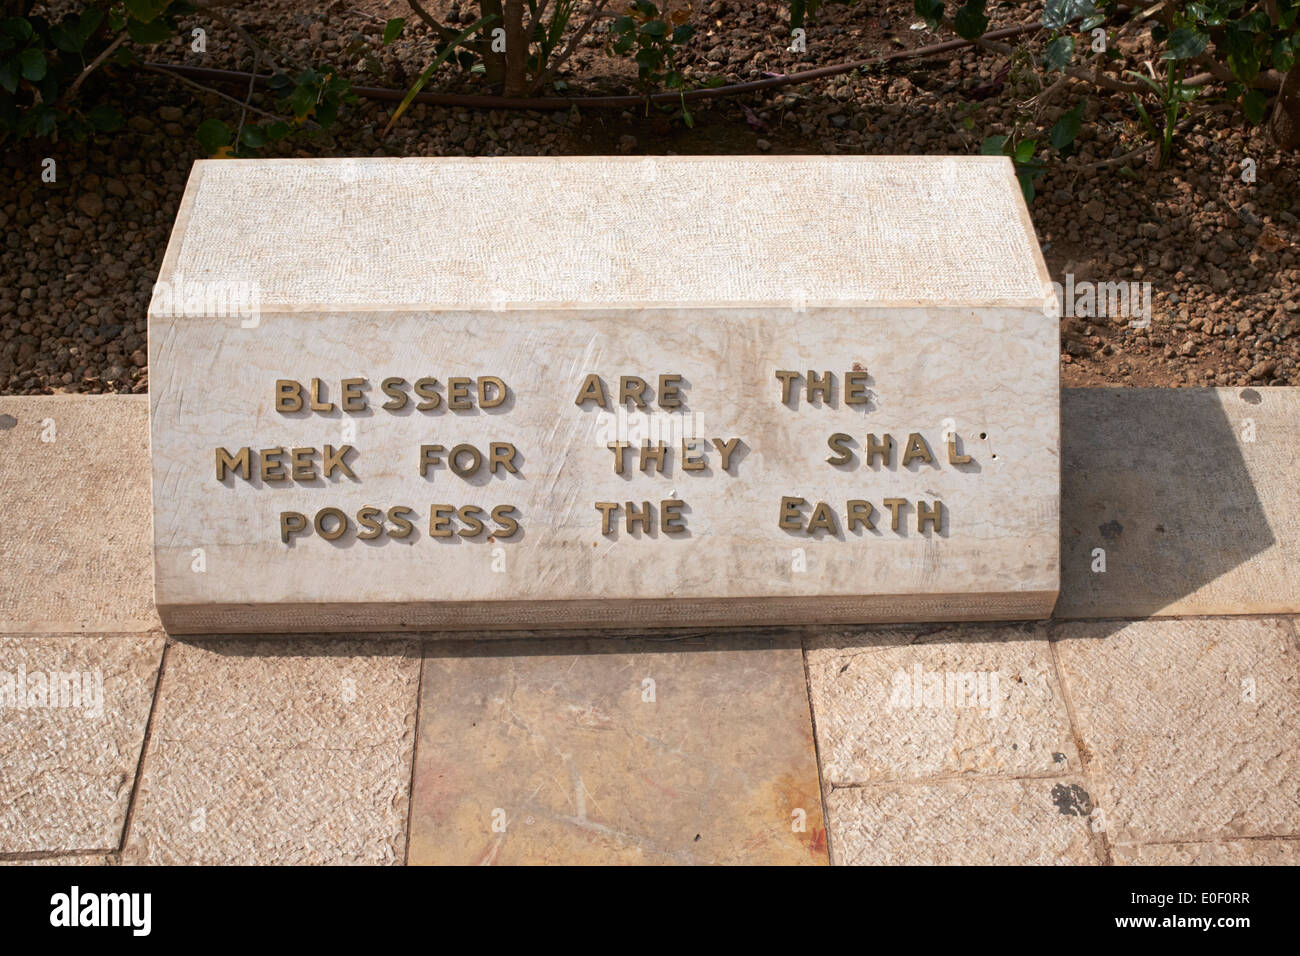 Blessed are the meek, for they shall possess the earth - Block on the Mount of Beatitudes Stock Photo